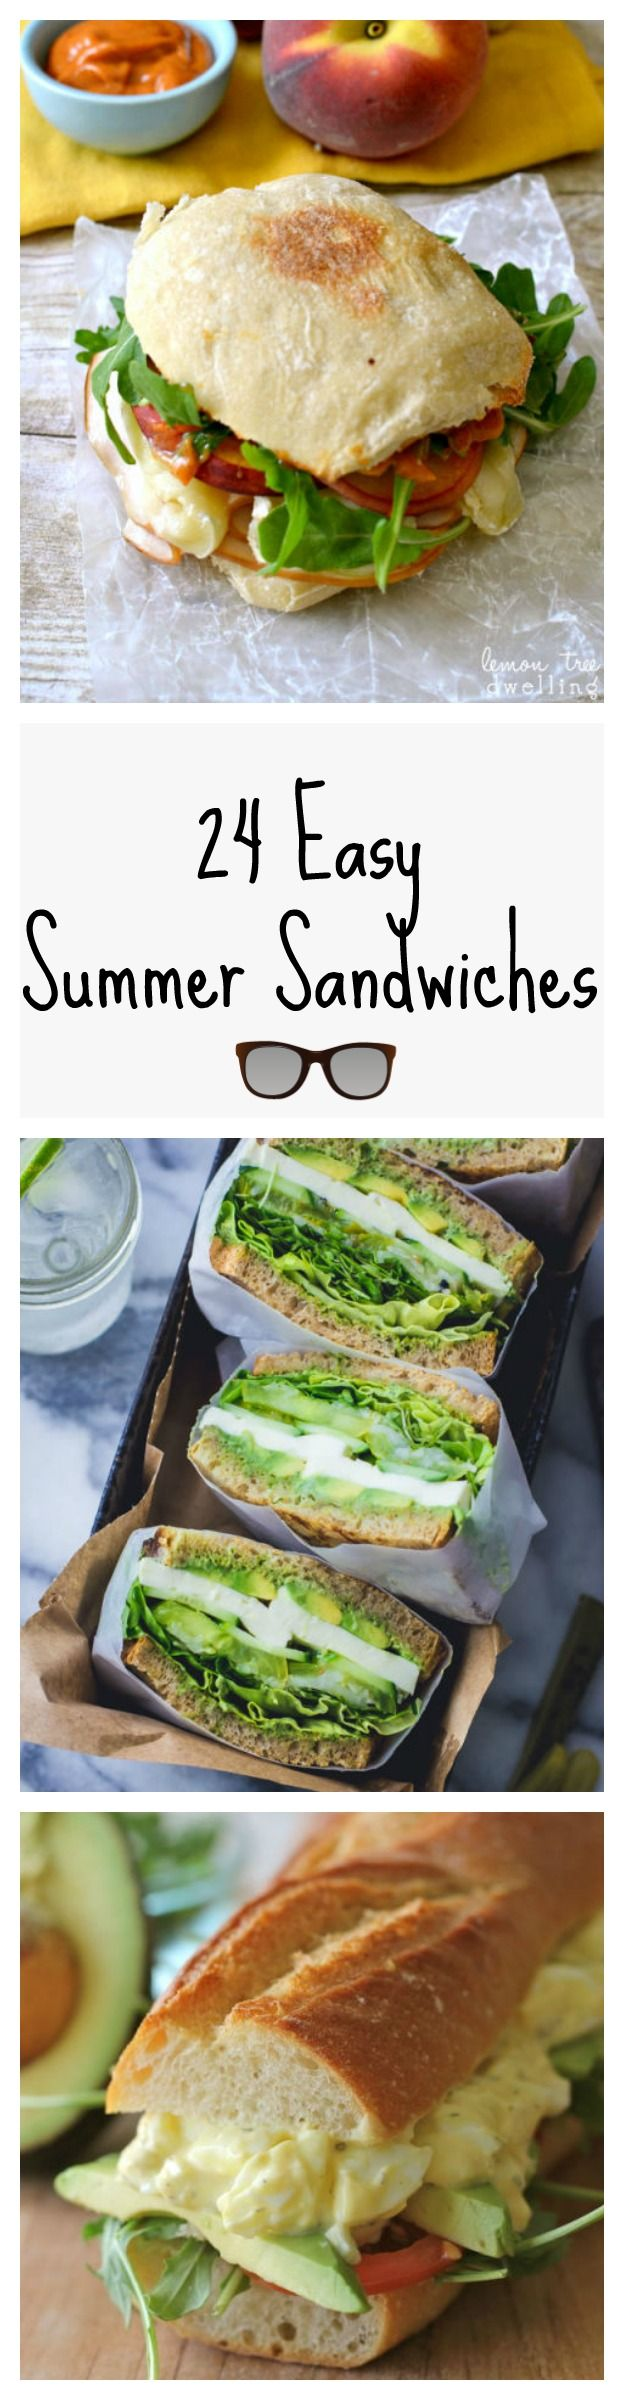 24 Tasty Summer Sandwiches Perfect for Your Next Picnic